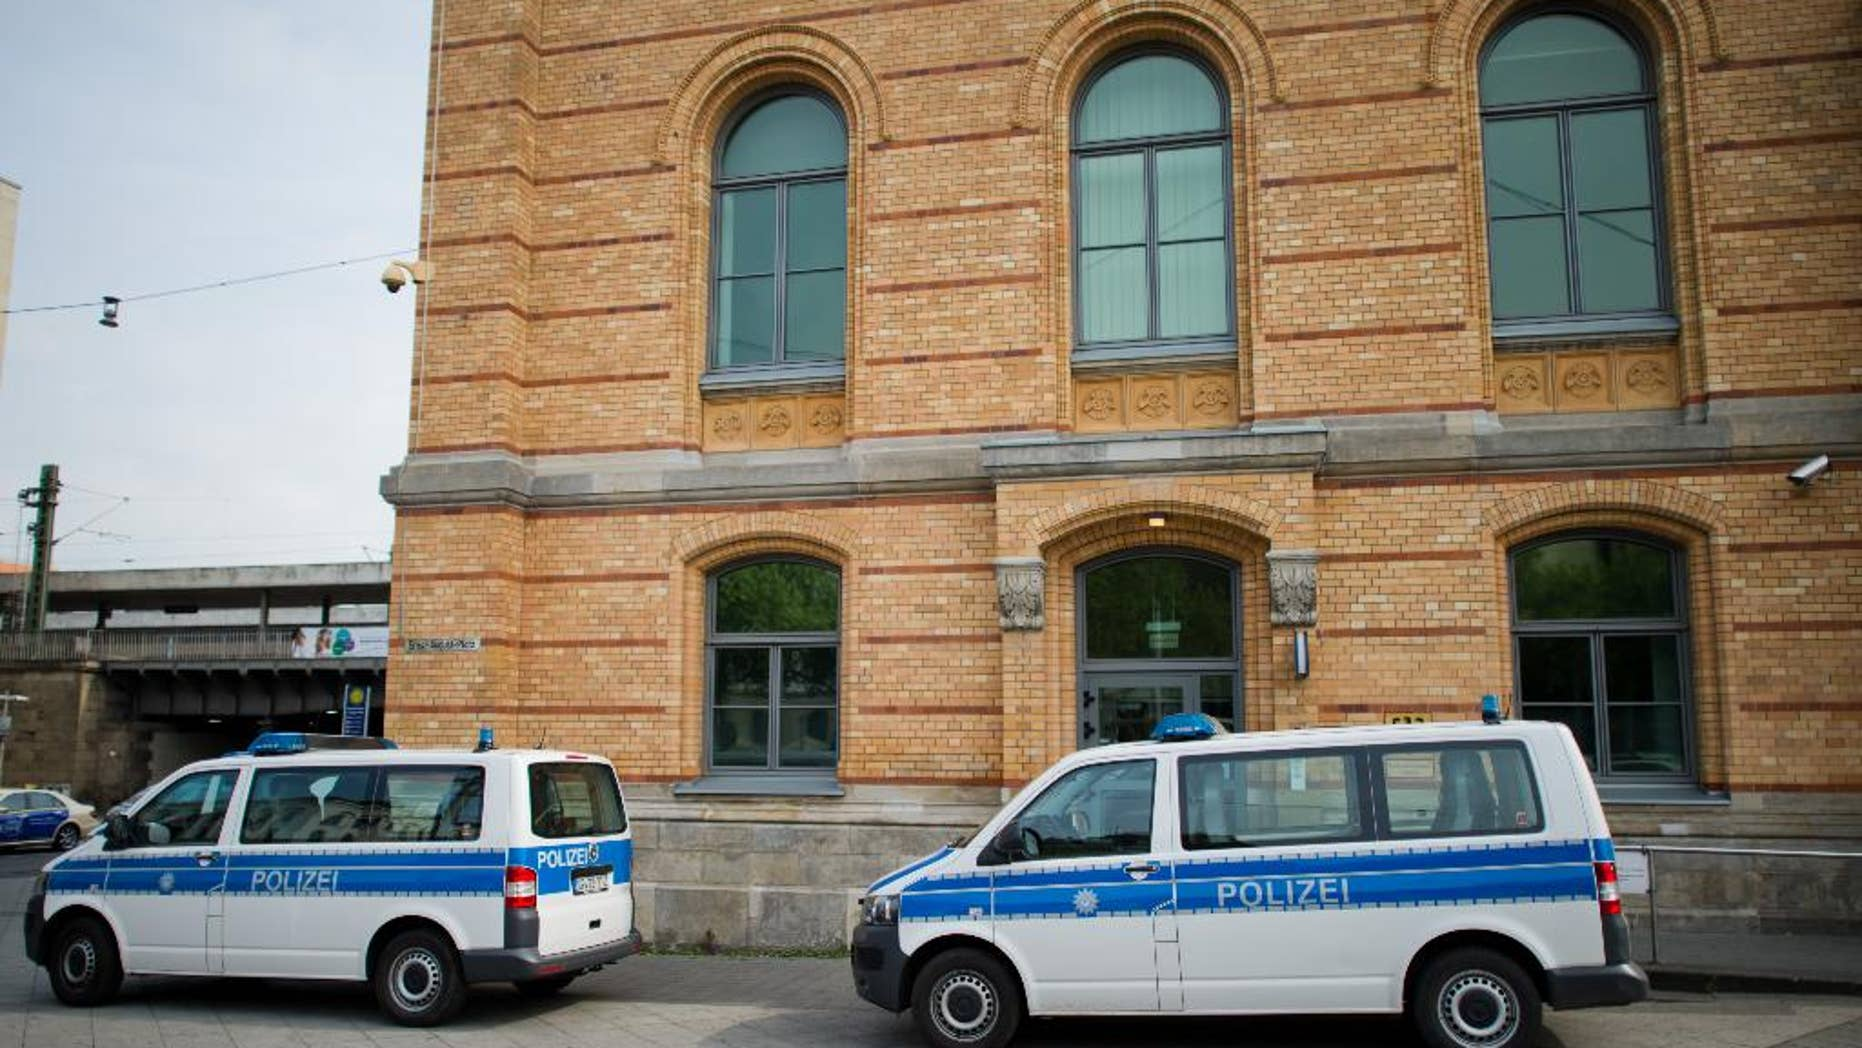 Police cars park in front of the police station at the railway station in Hannover, Germany, Monday, May 18, 2015. Hannover prosecutors said a 39-year-old police officer is being investigated on allegations he abused two immigrants while they were in custody and boasted about it over social media.  (Julian Stratenschultedpa via AP)